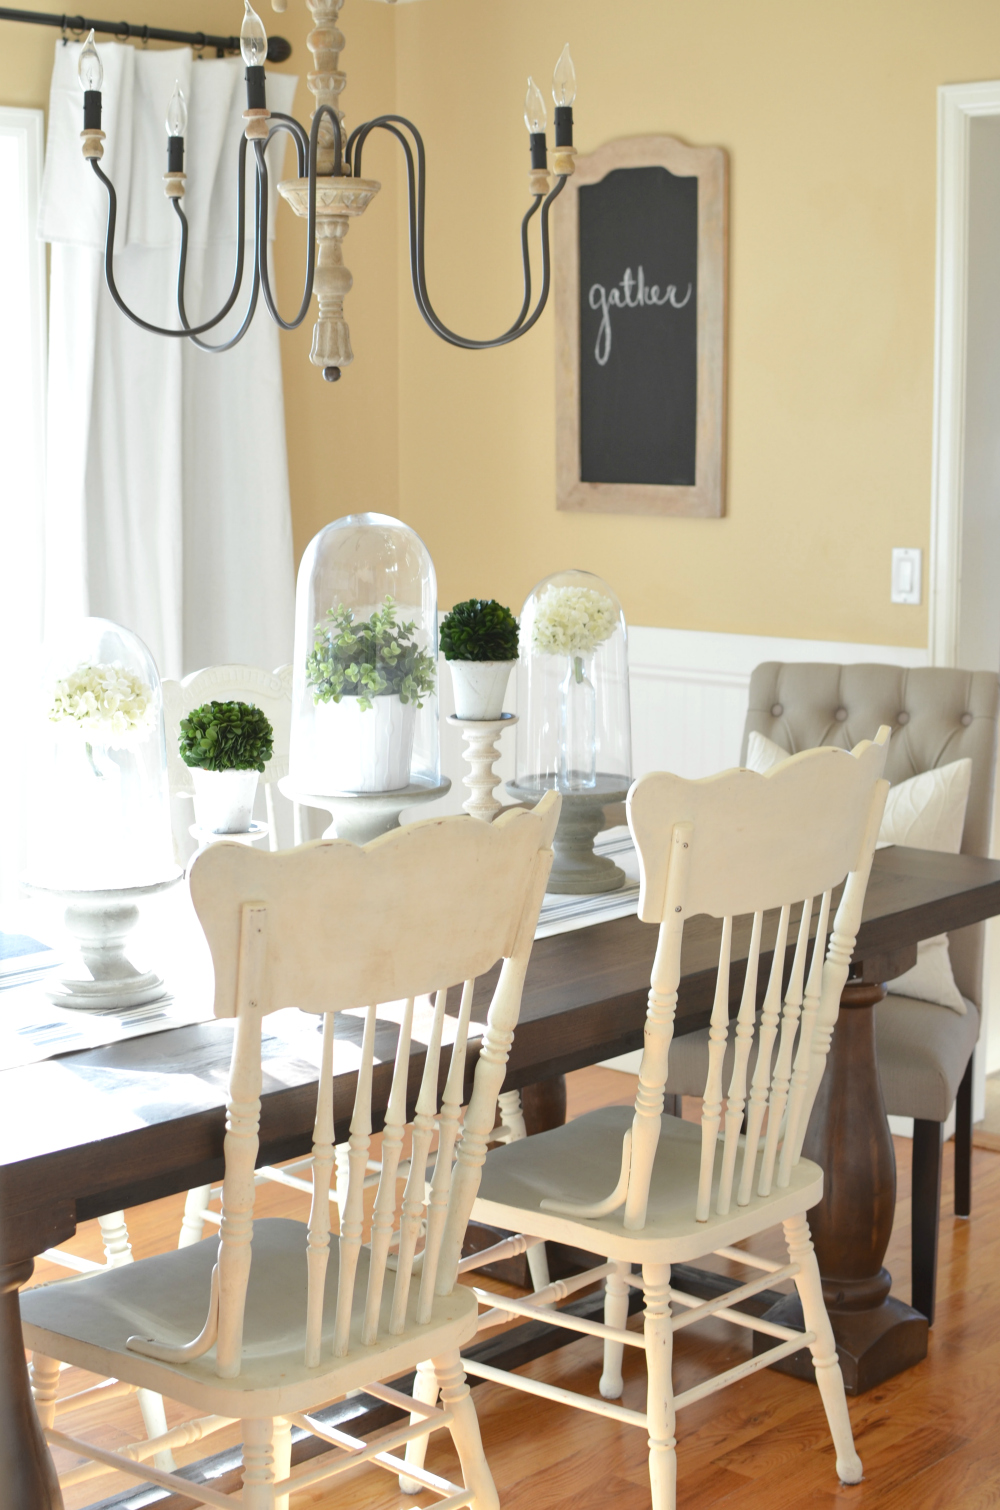 Modern farmhouse dining room makeover beautiful dining room makeover - Modern Farmhouse Dining Room Makeover Beautiful Dining Room Makeover Full Of Vintage Farmhouse Charm